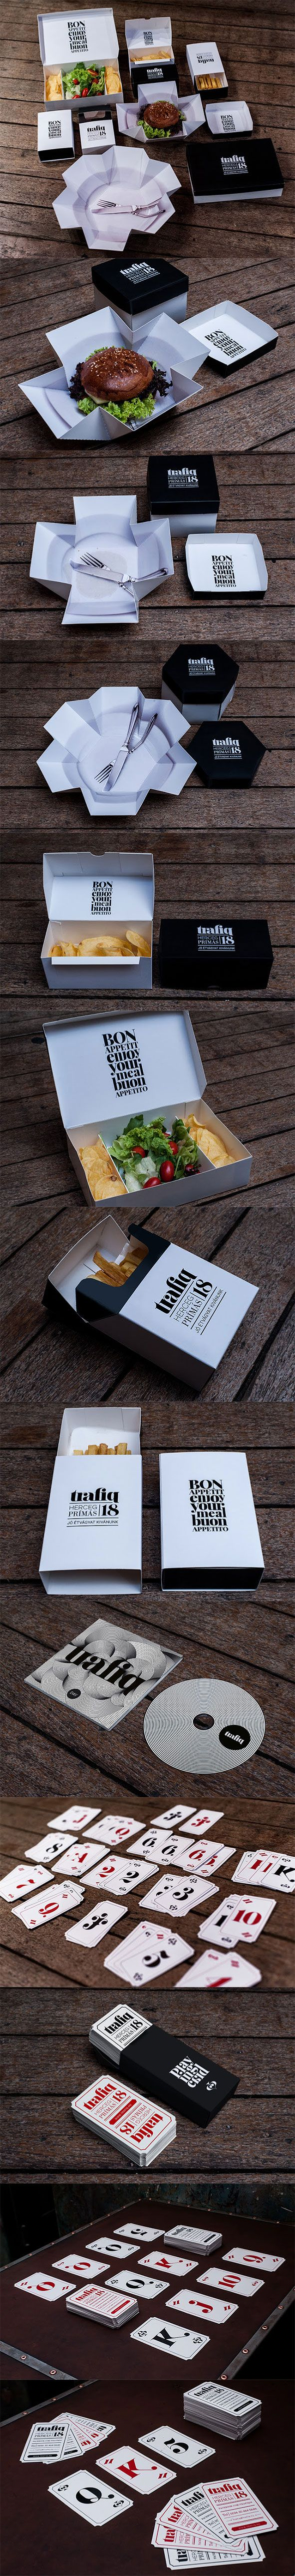 Trafiq @Maureen Mills Mills Mills Mills Mills Mills Mills Mills Mills Milano of the World #packaging #branding #marketing PD